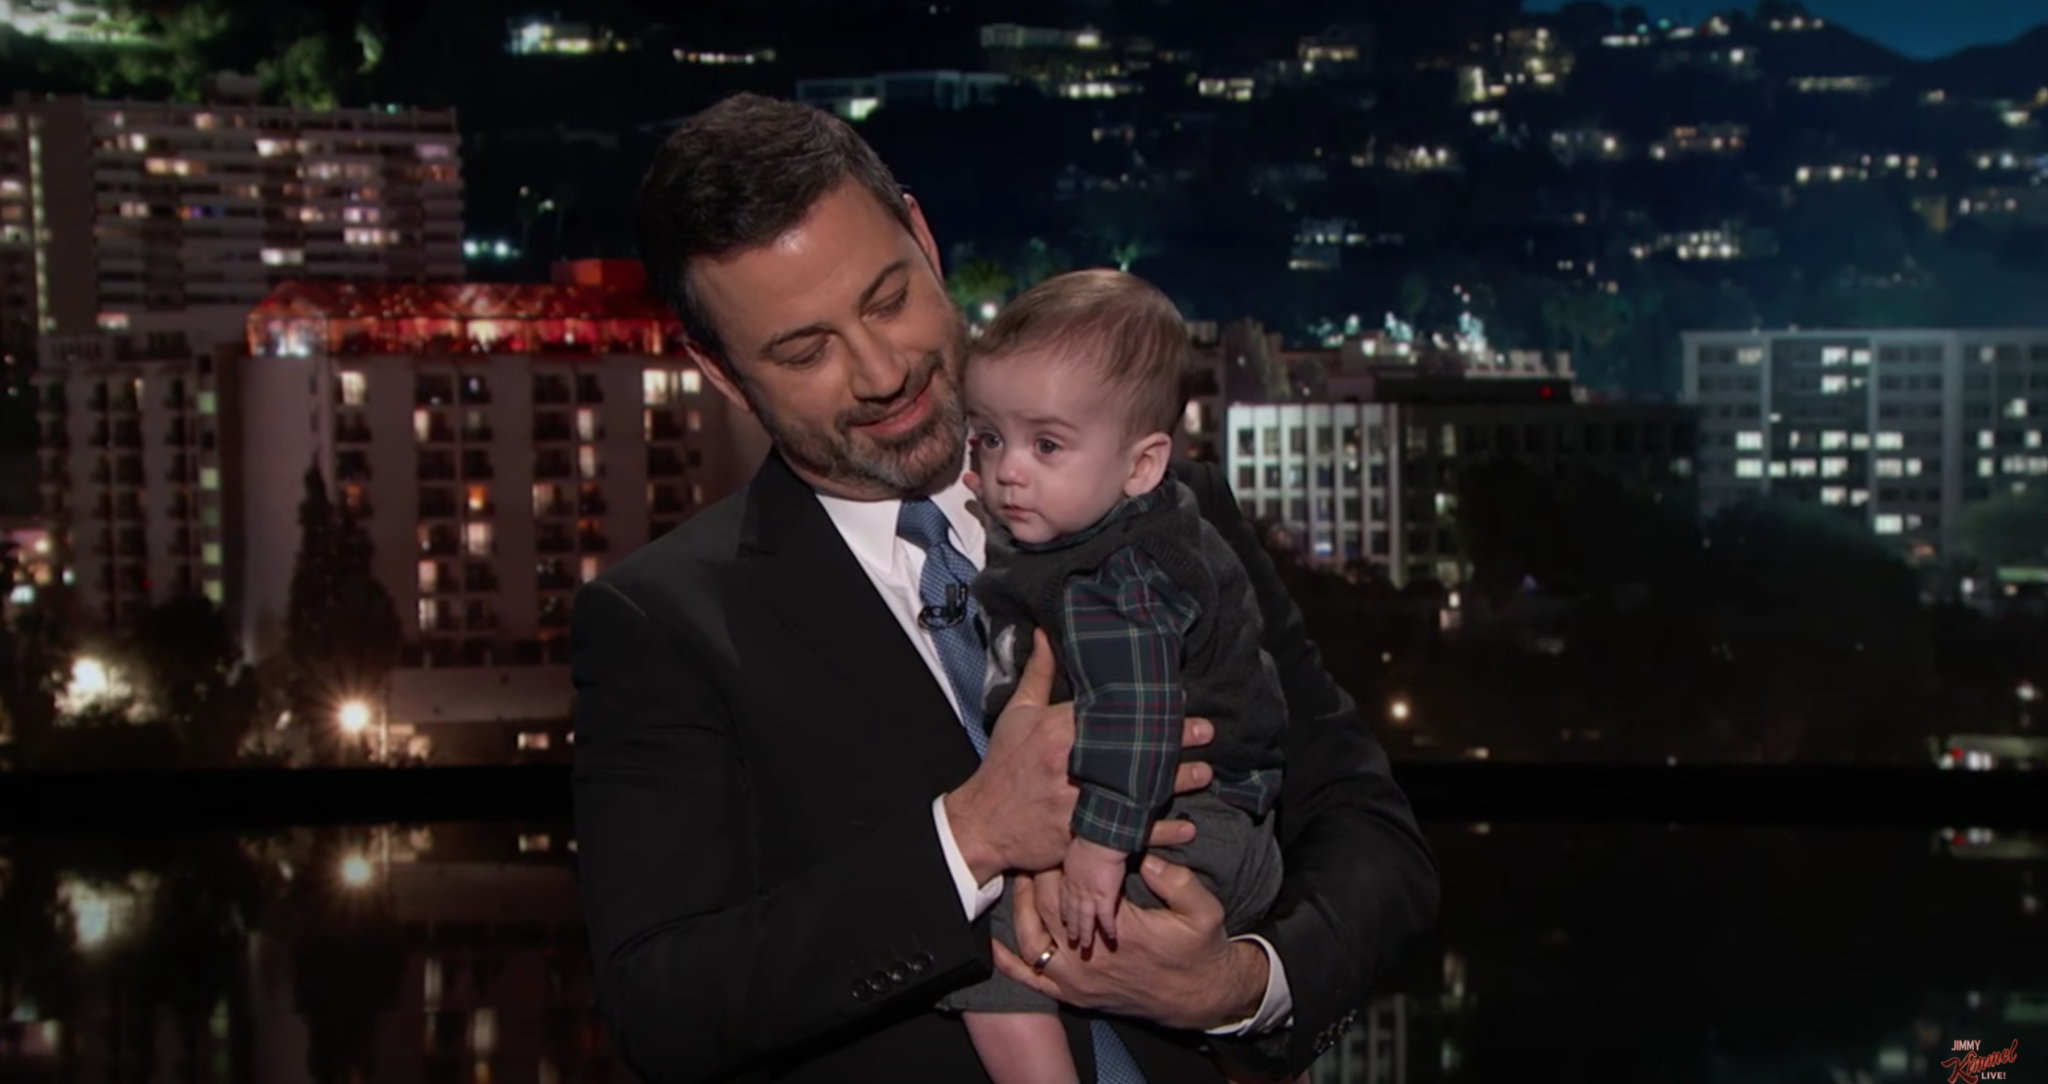 Jimmy Kimmel brings son on 'Jimmy Kimmel Live' asks Congress to renew CHIP